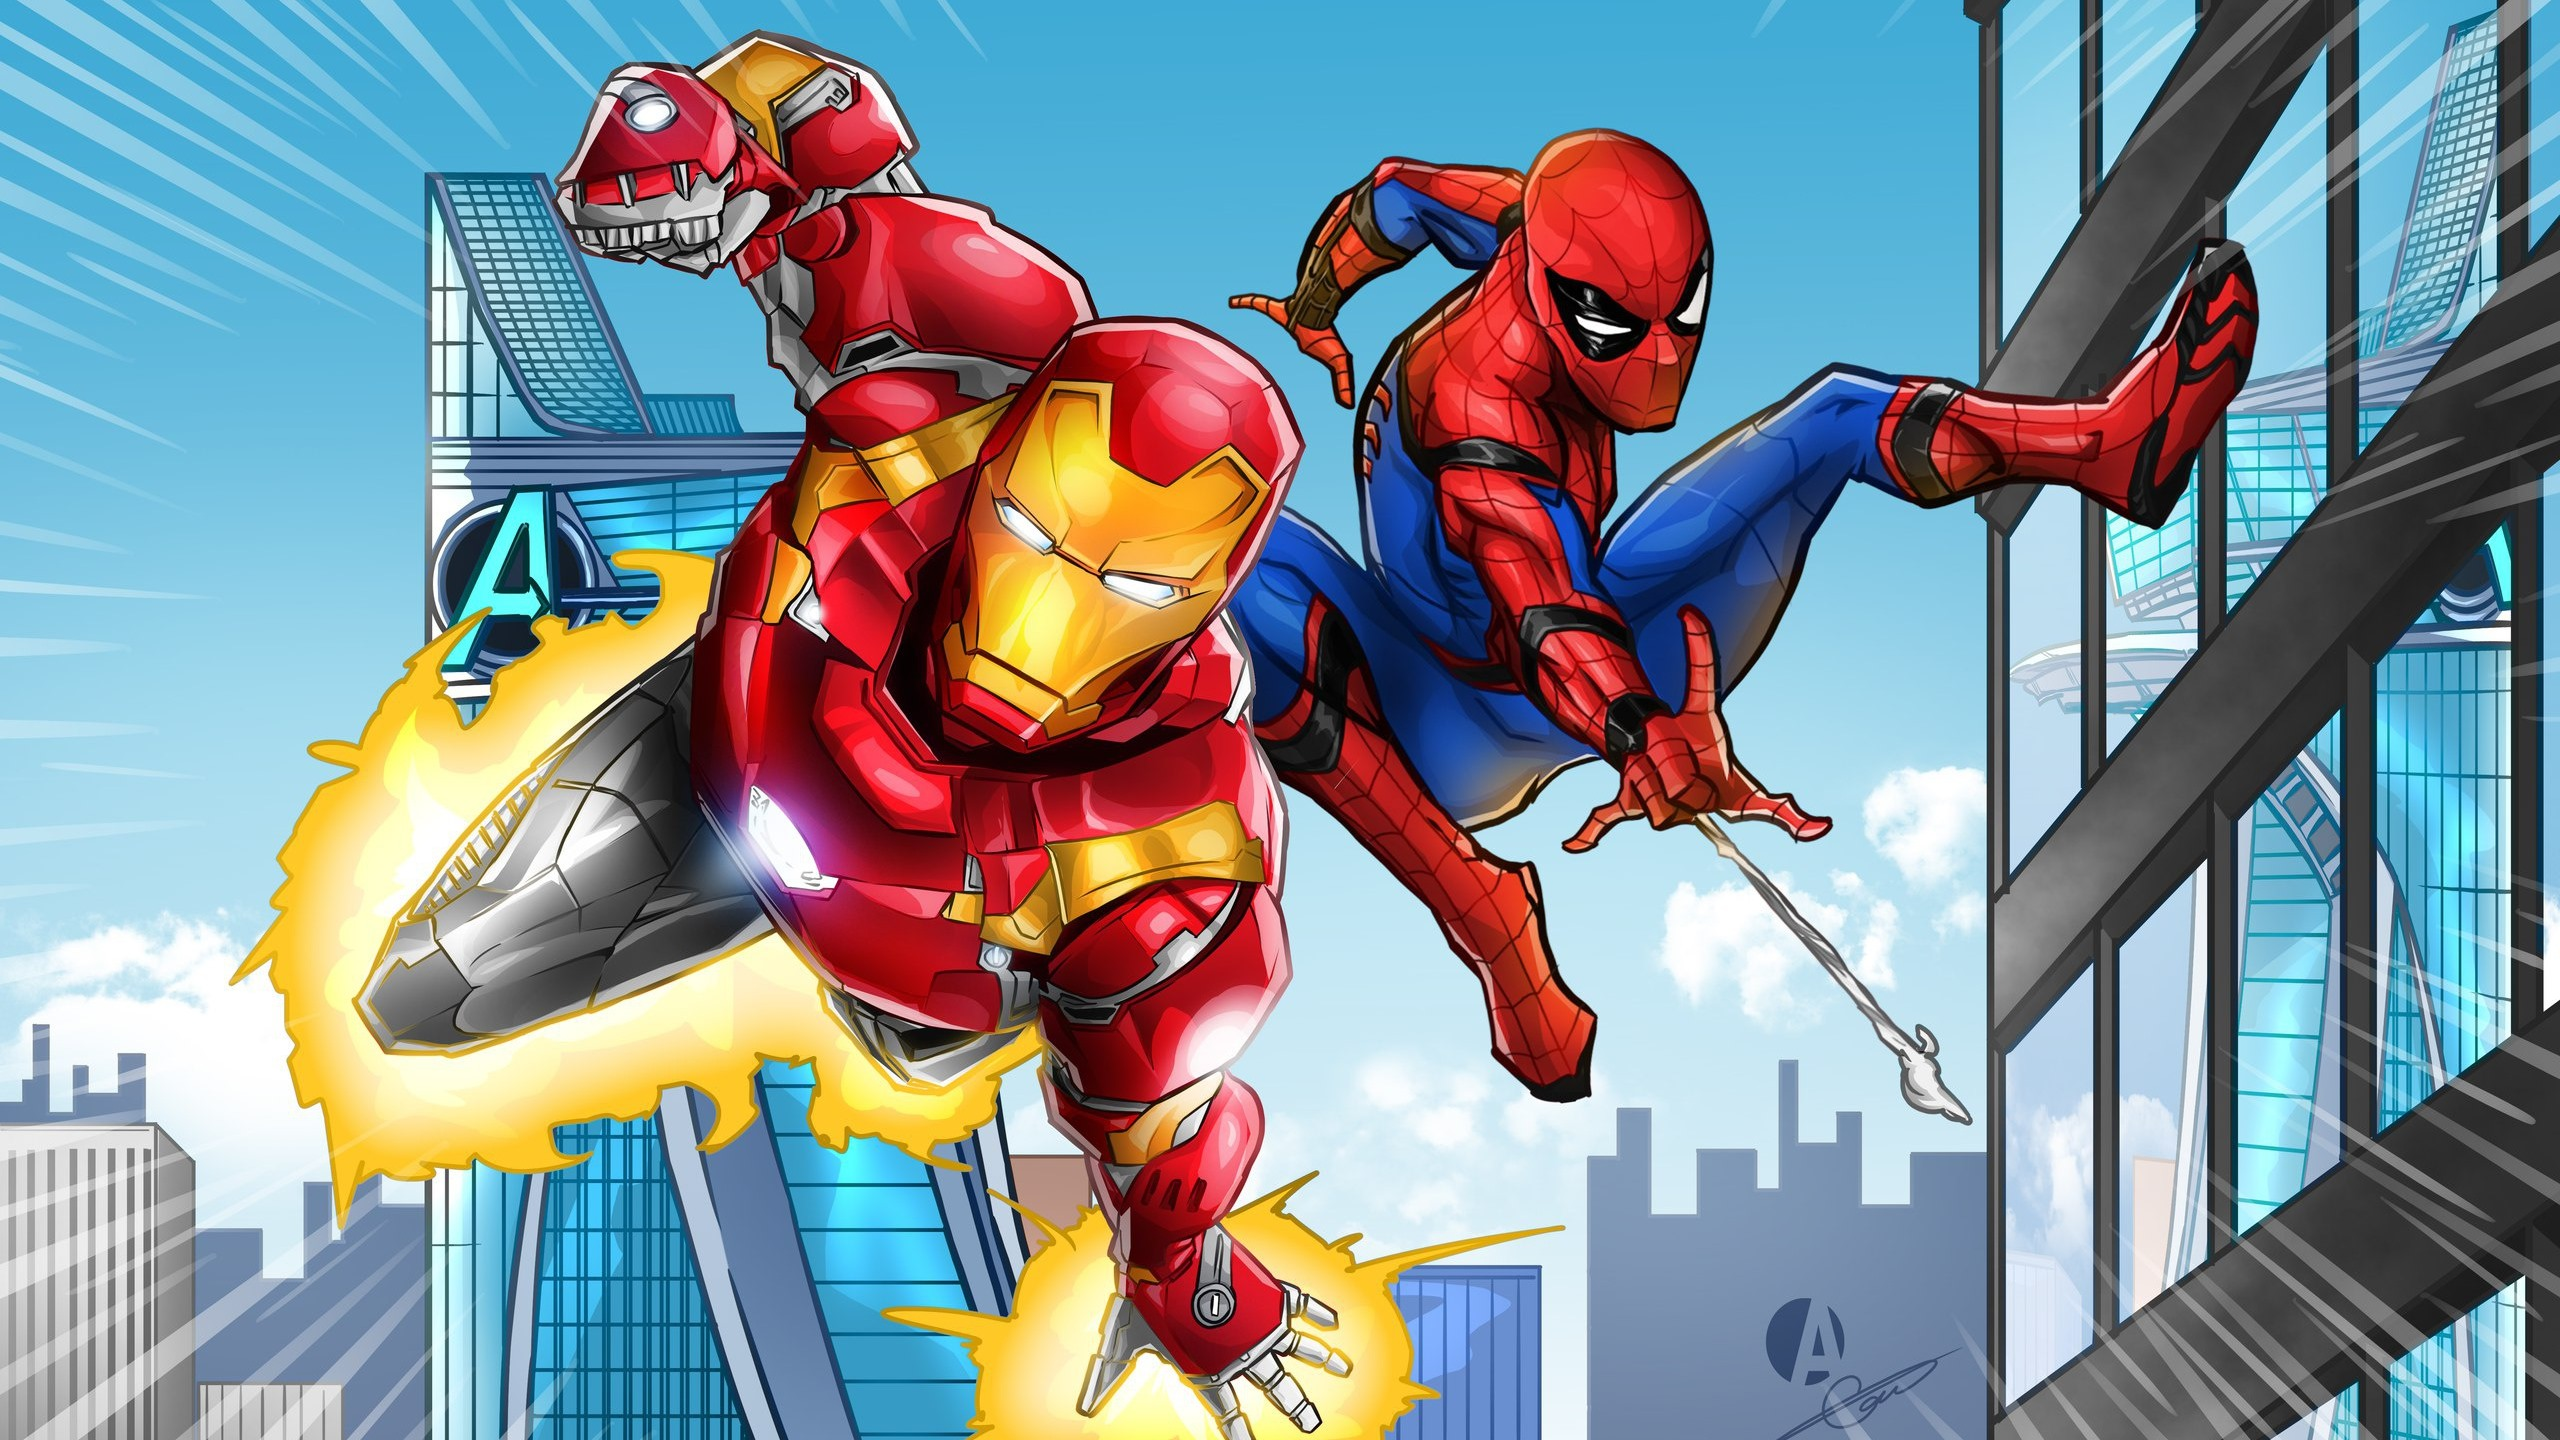 Wallpaper Iron Man And Spider Man Dc Comics 2560x1440 Qhd Picture